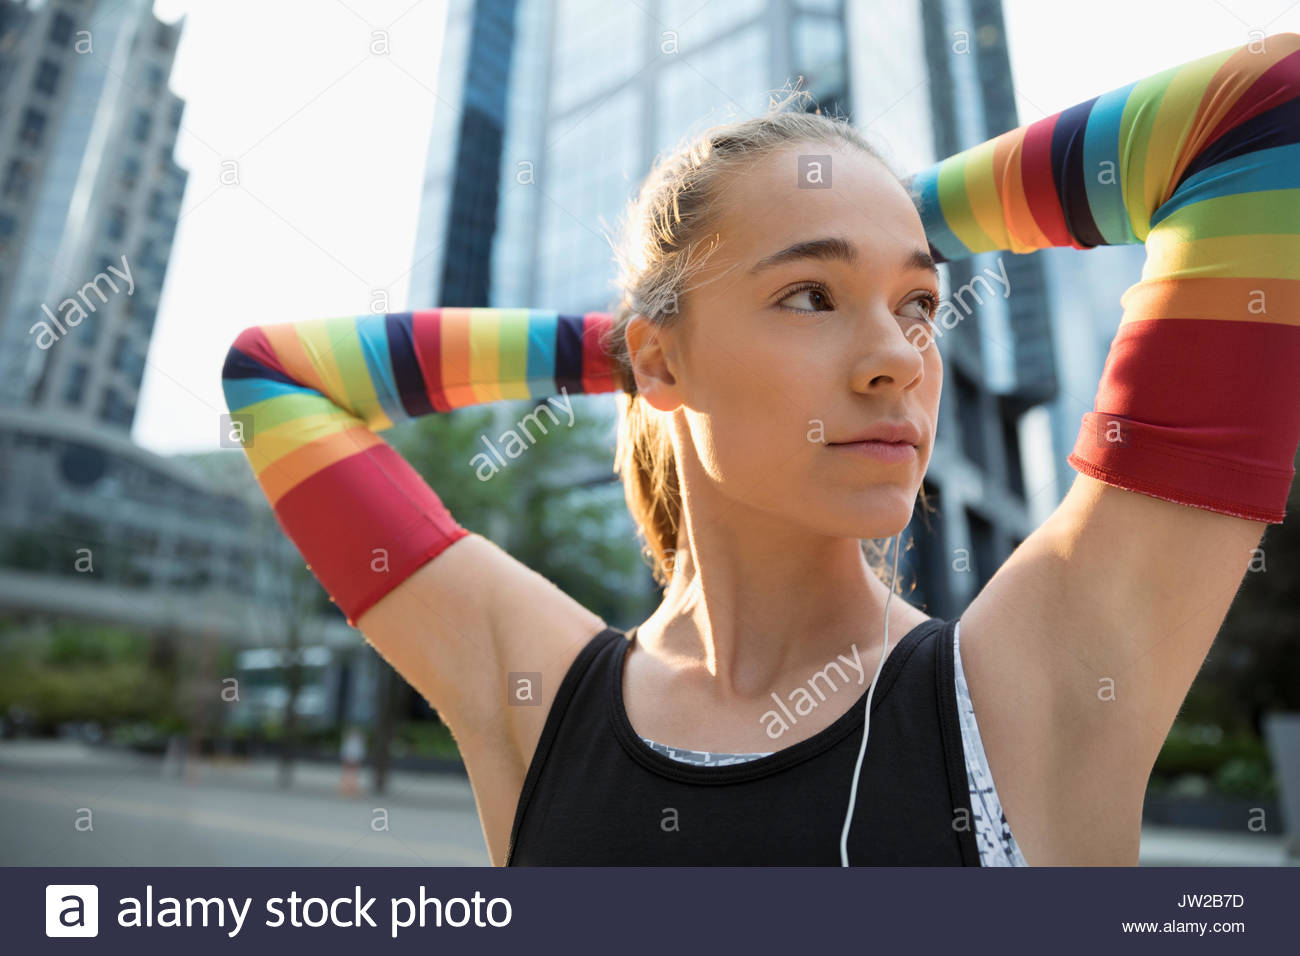 Teenage girl runner wearing rainbow compression arm sleeves with hands behind head - Stock Image